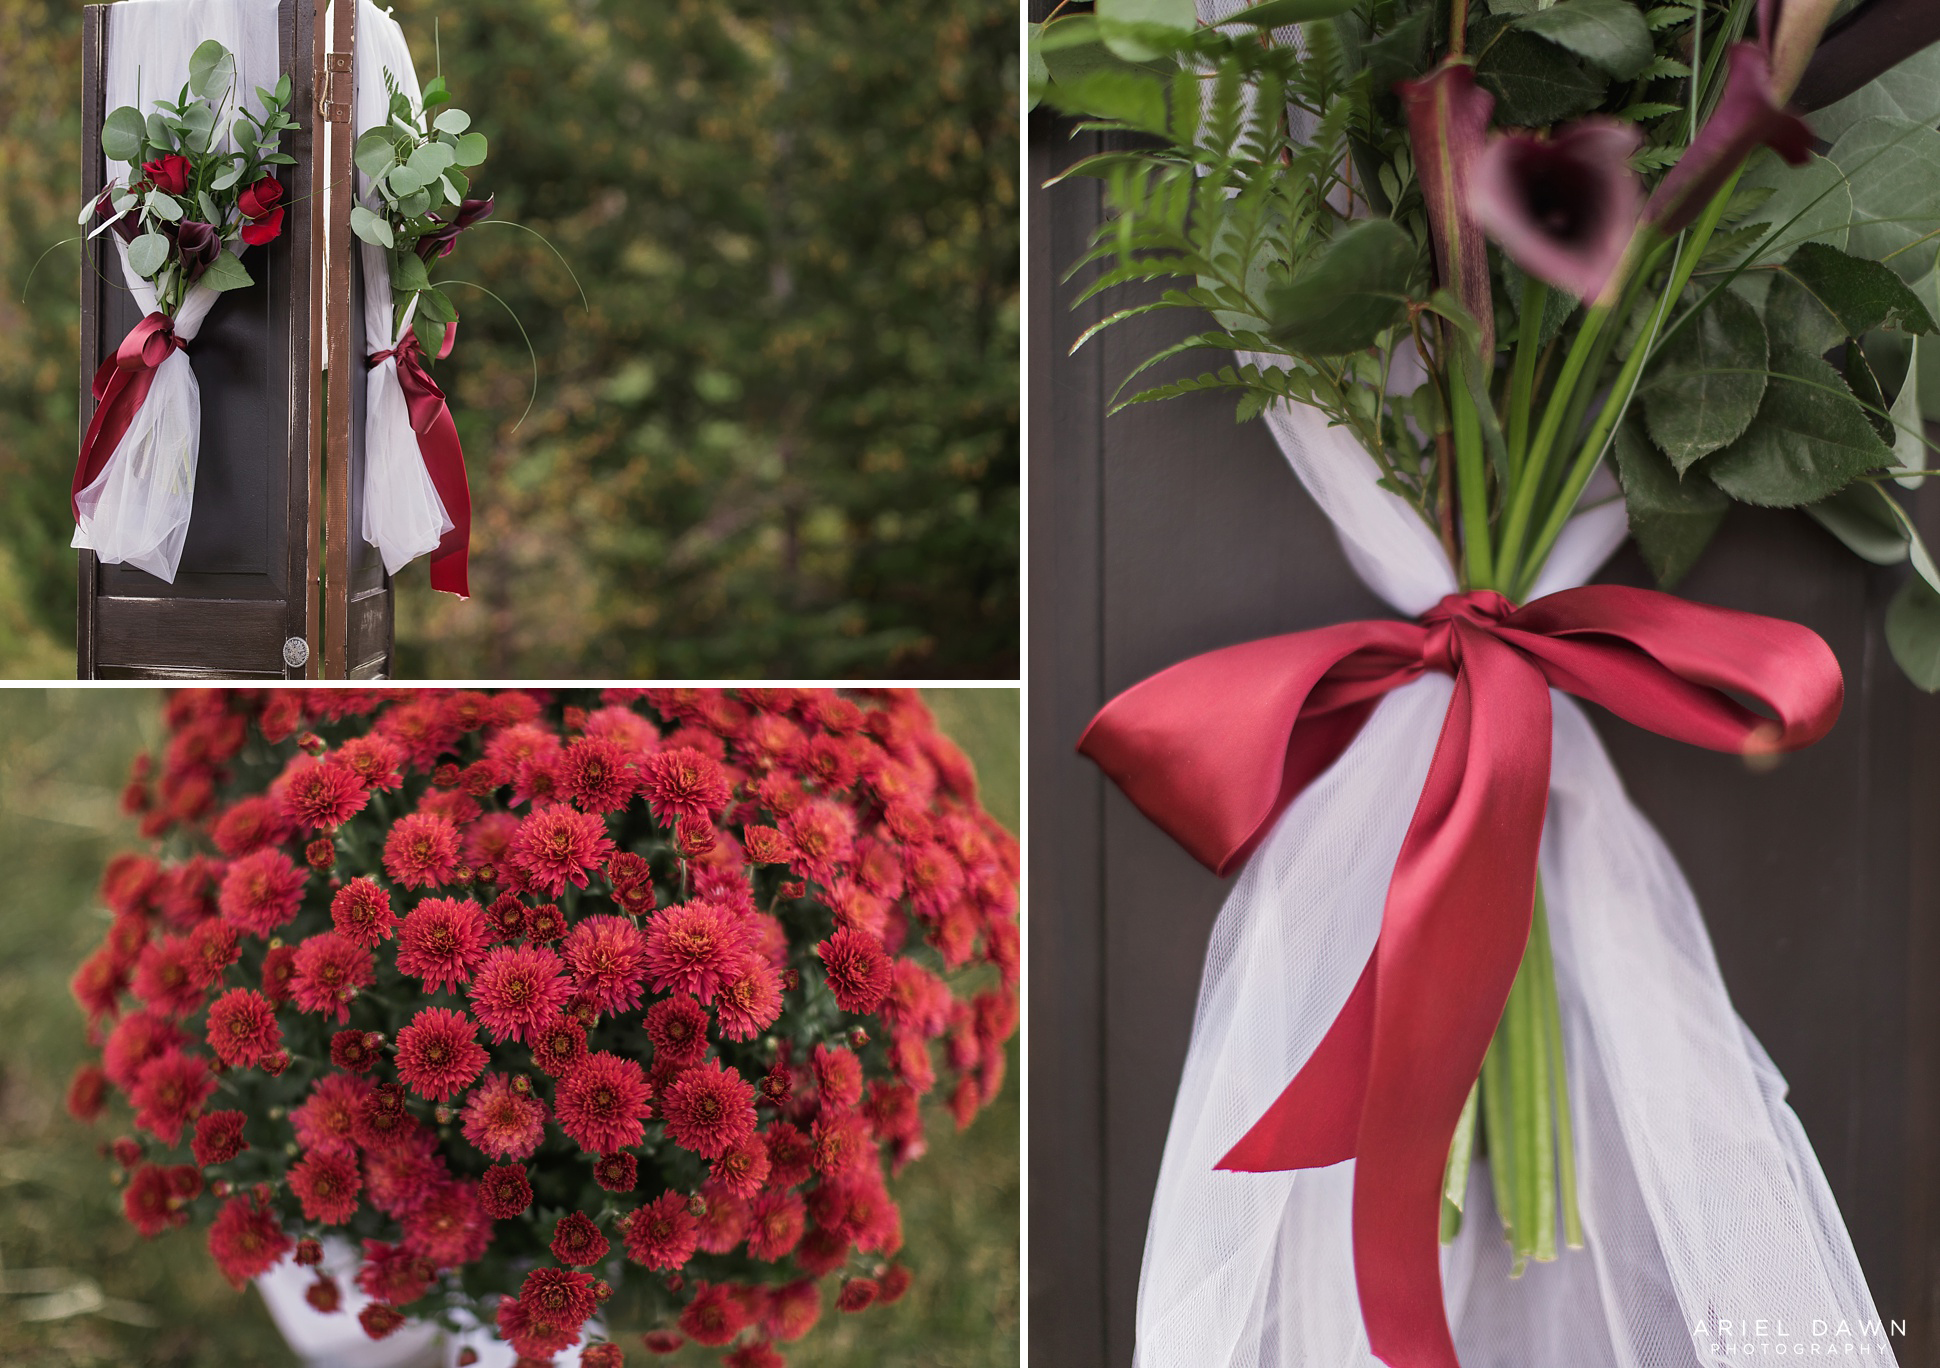 The maroon and reds from the wedding decorations that go so wonderful with all the lush green from the forest.